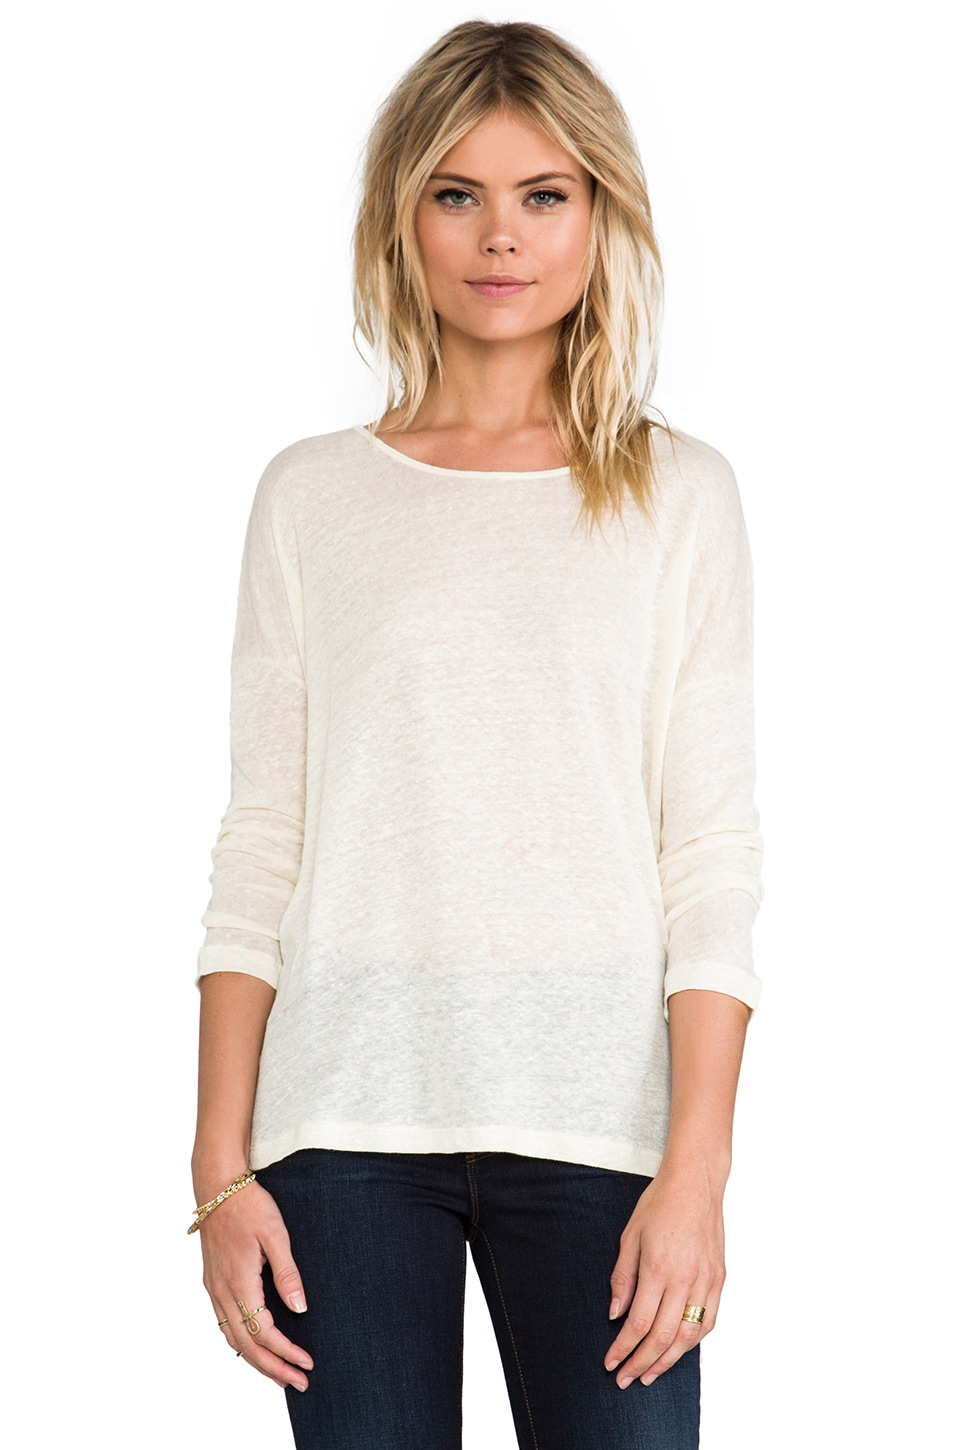 ANINE BING Loose Fit T-Shirt in Cream